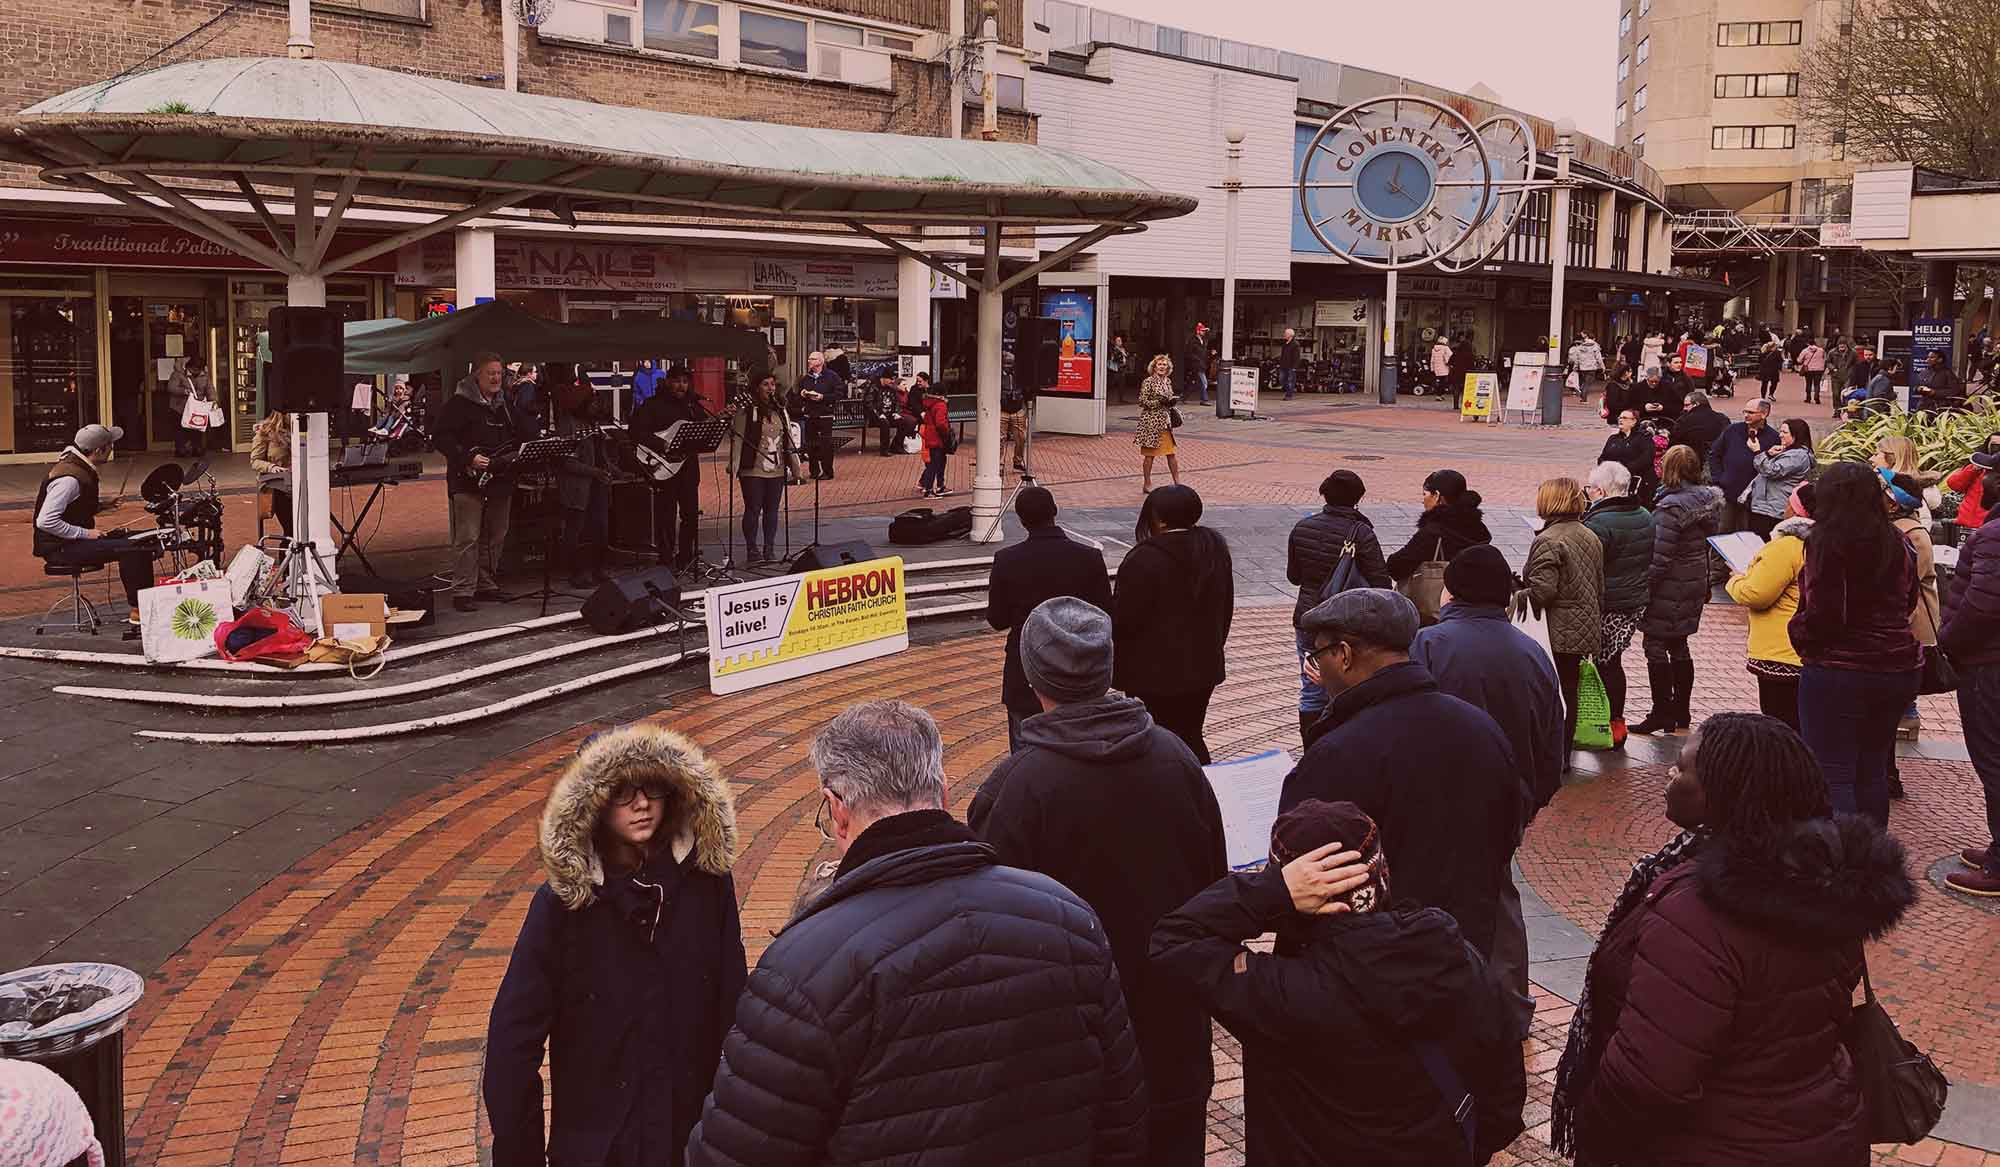 Christian Outreach in Coventry City Centre